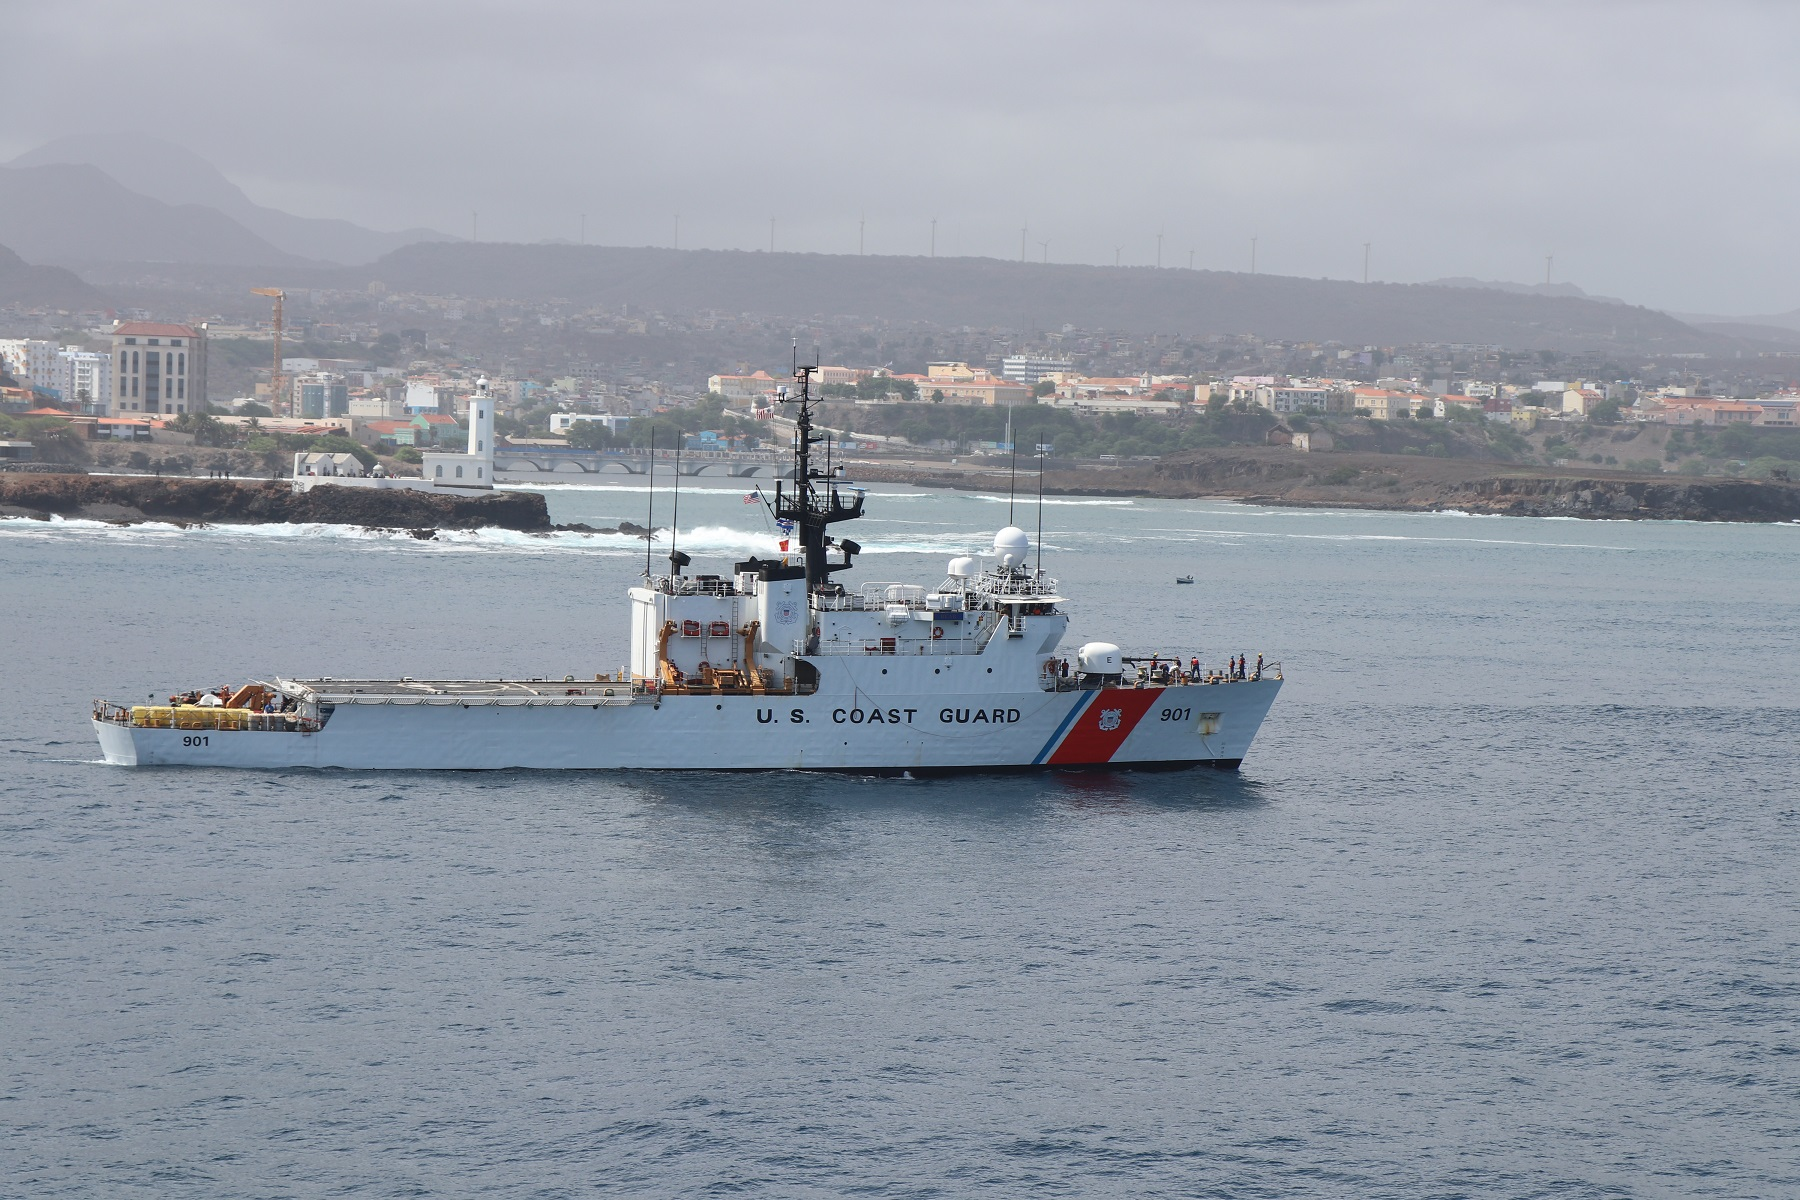 CGC BEAR off the coast of Praia, during the crew's most recent deployment to Africa.